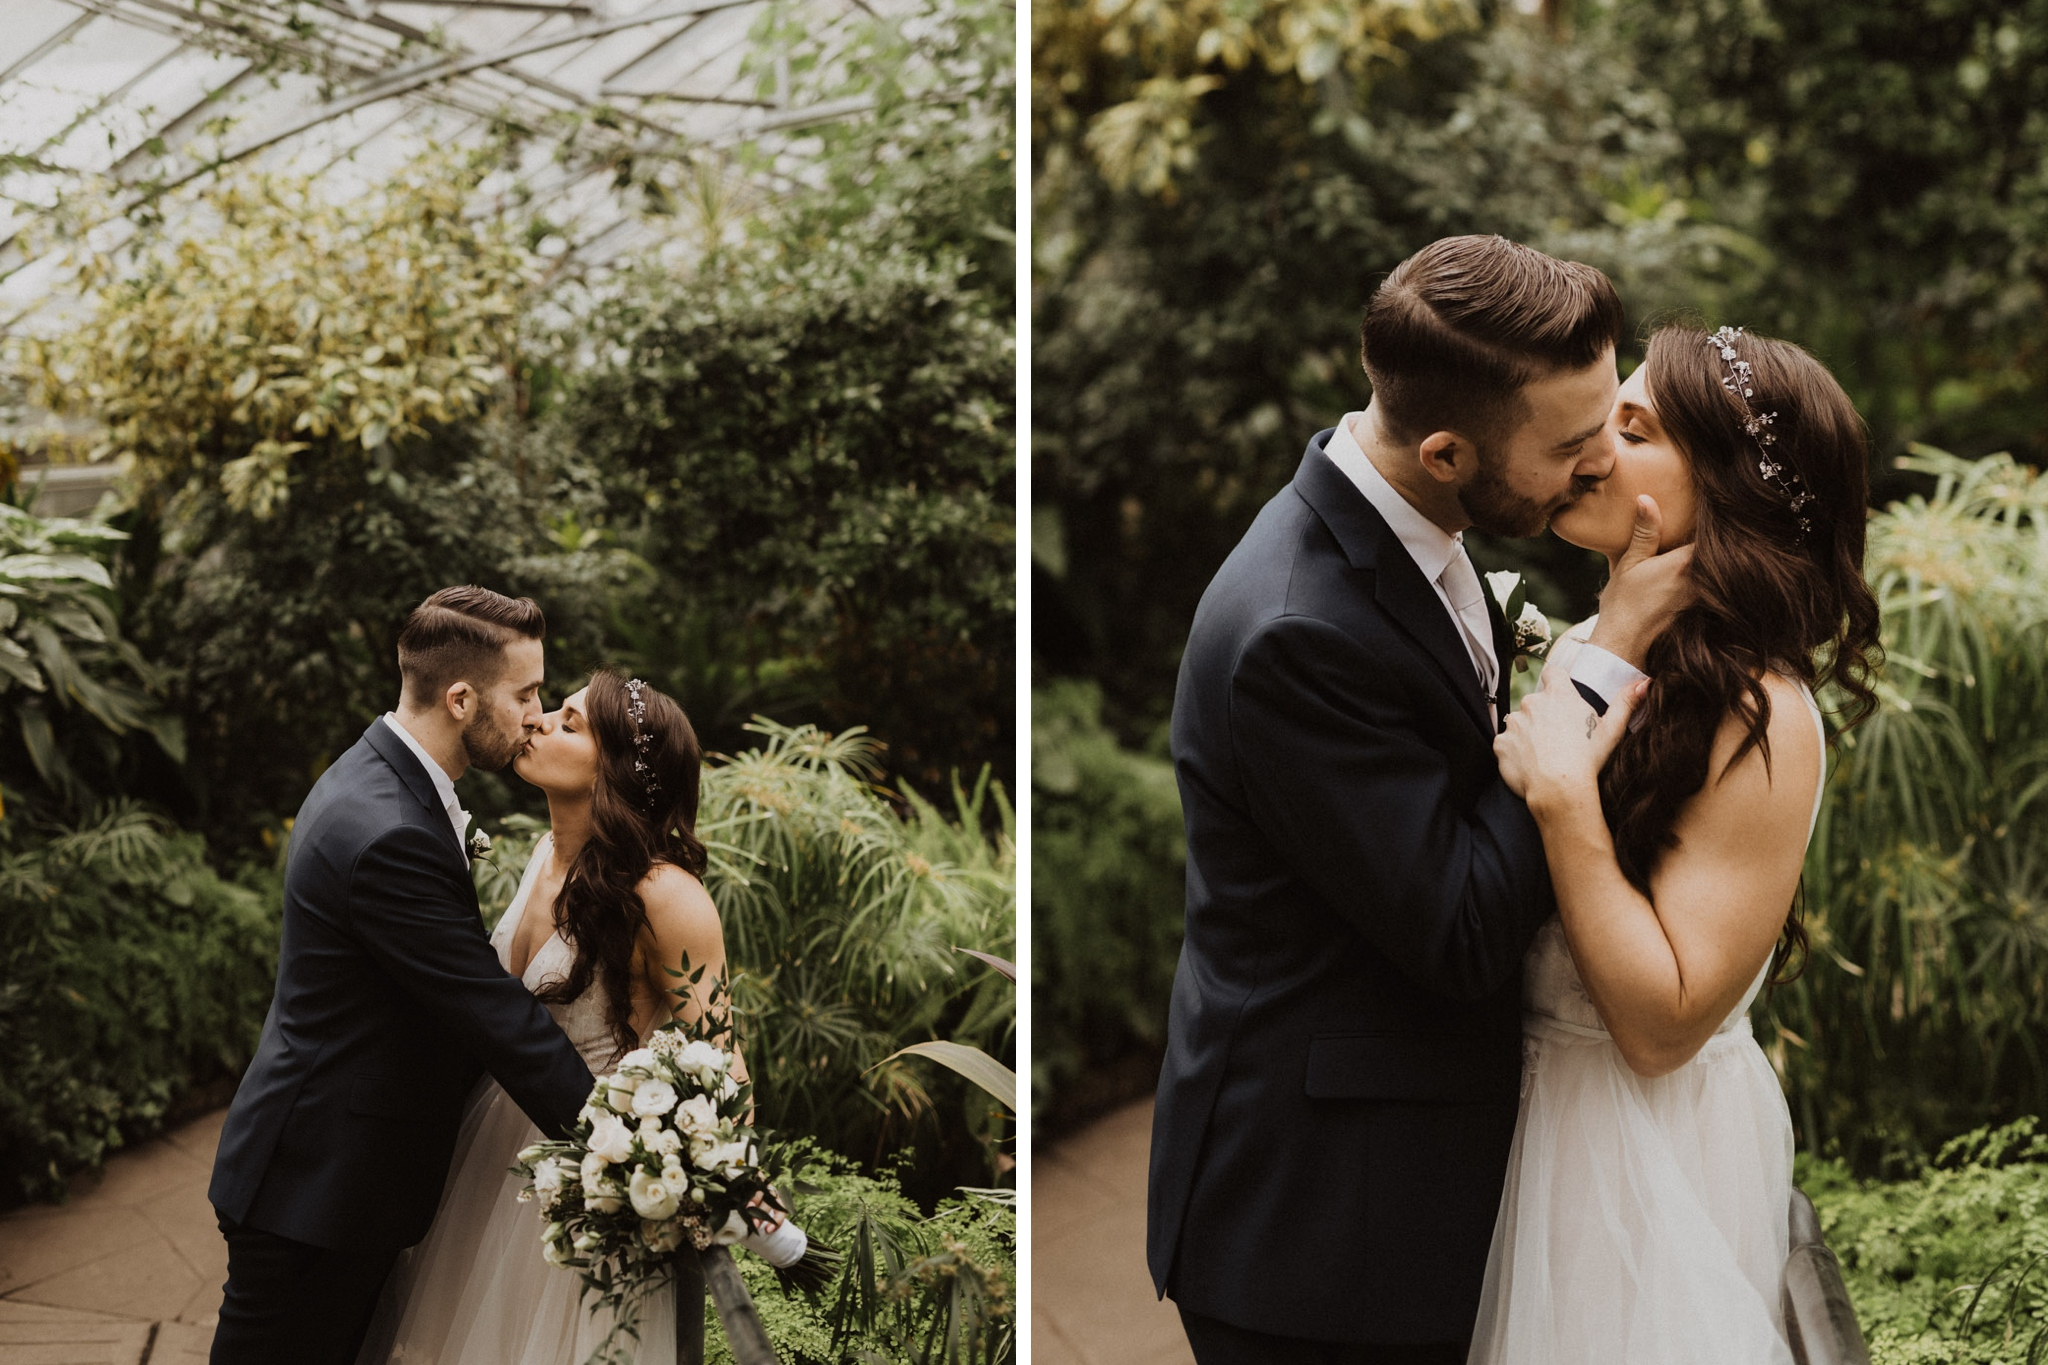 Greenhouse Elopement Allan Gardens Toronto - bride and groom kiss